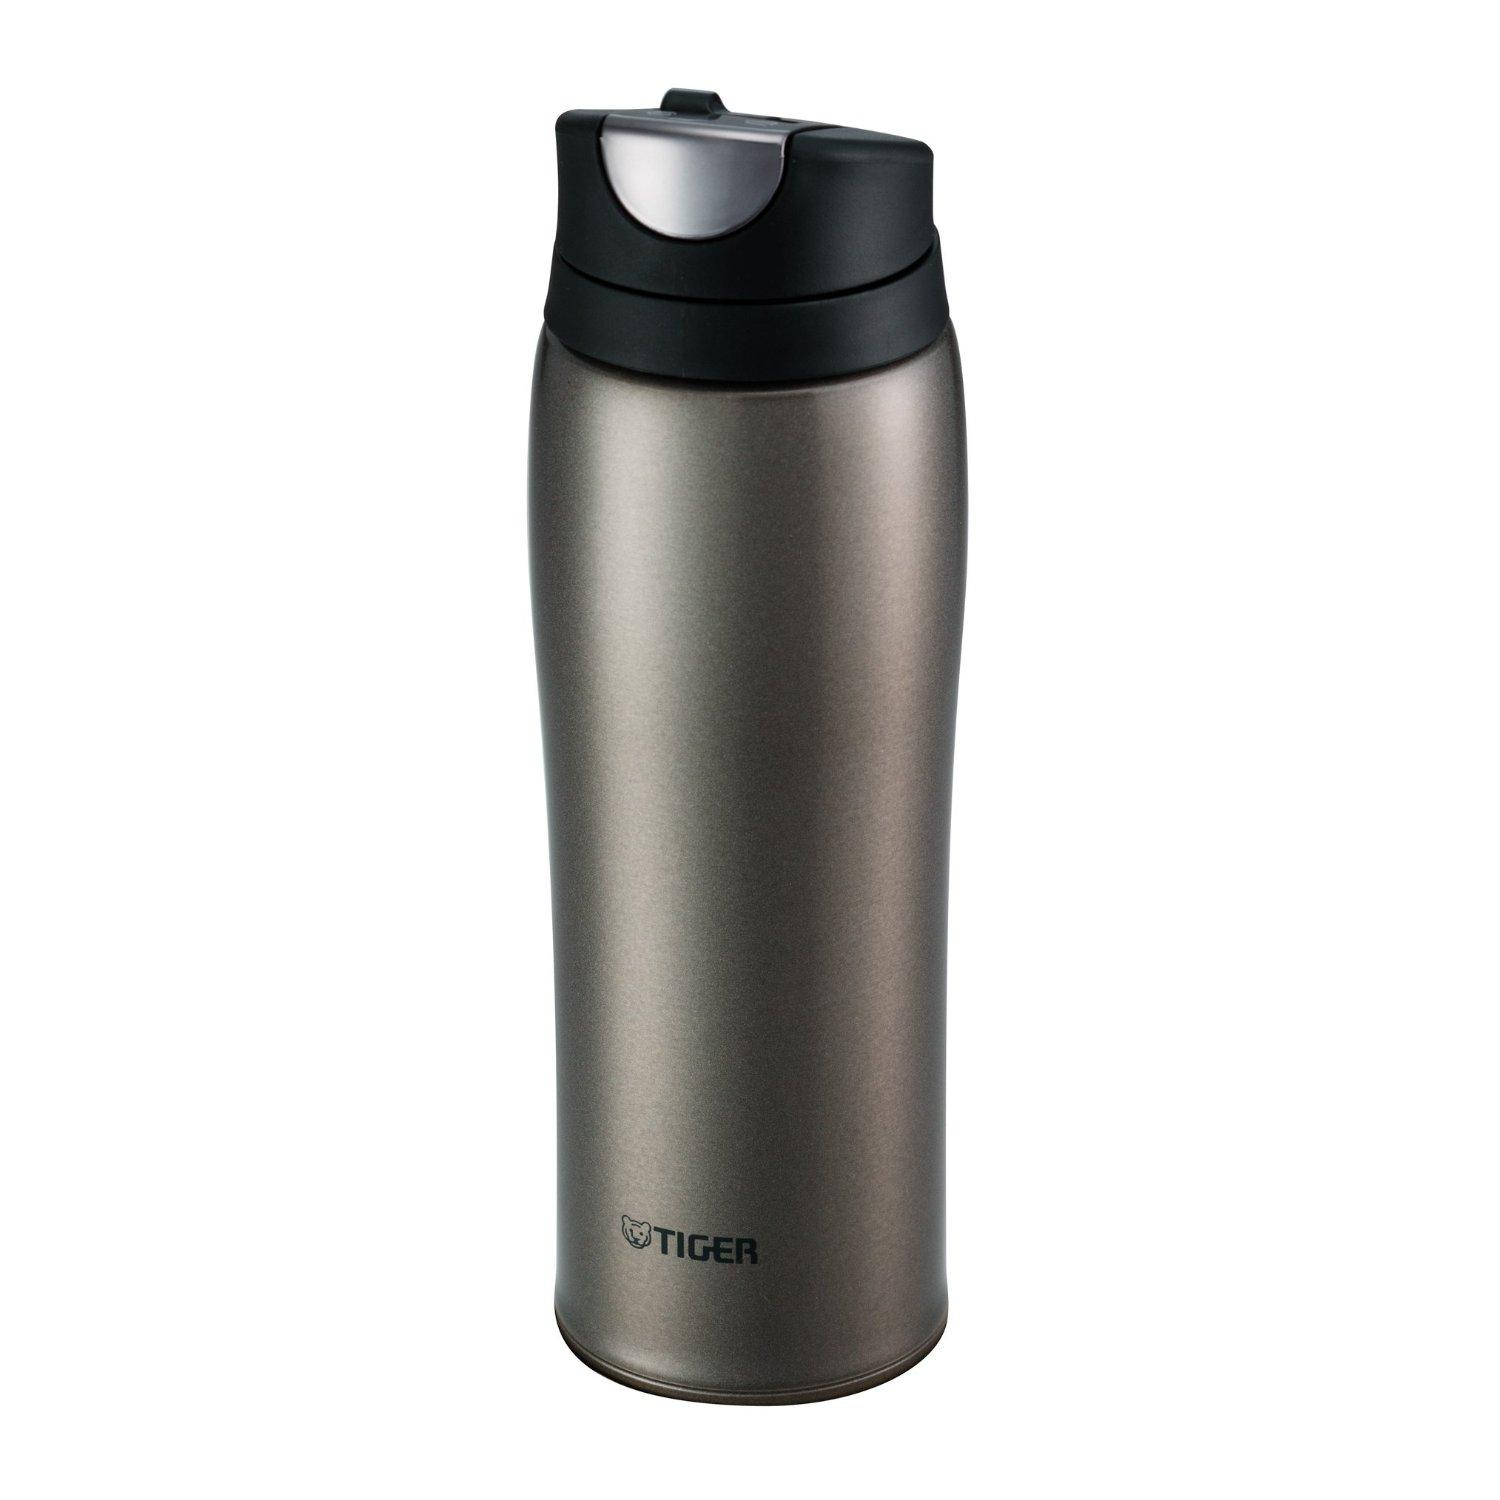 Tiger Corporation MCB-H048 Stainless Steel Bottle, 0.48-Liter/16.2-Ounce